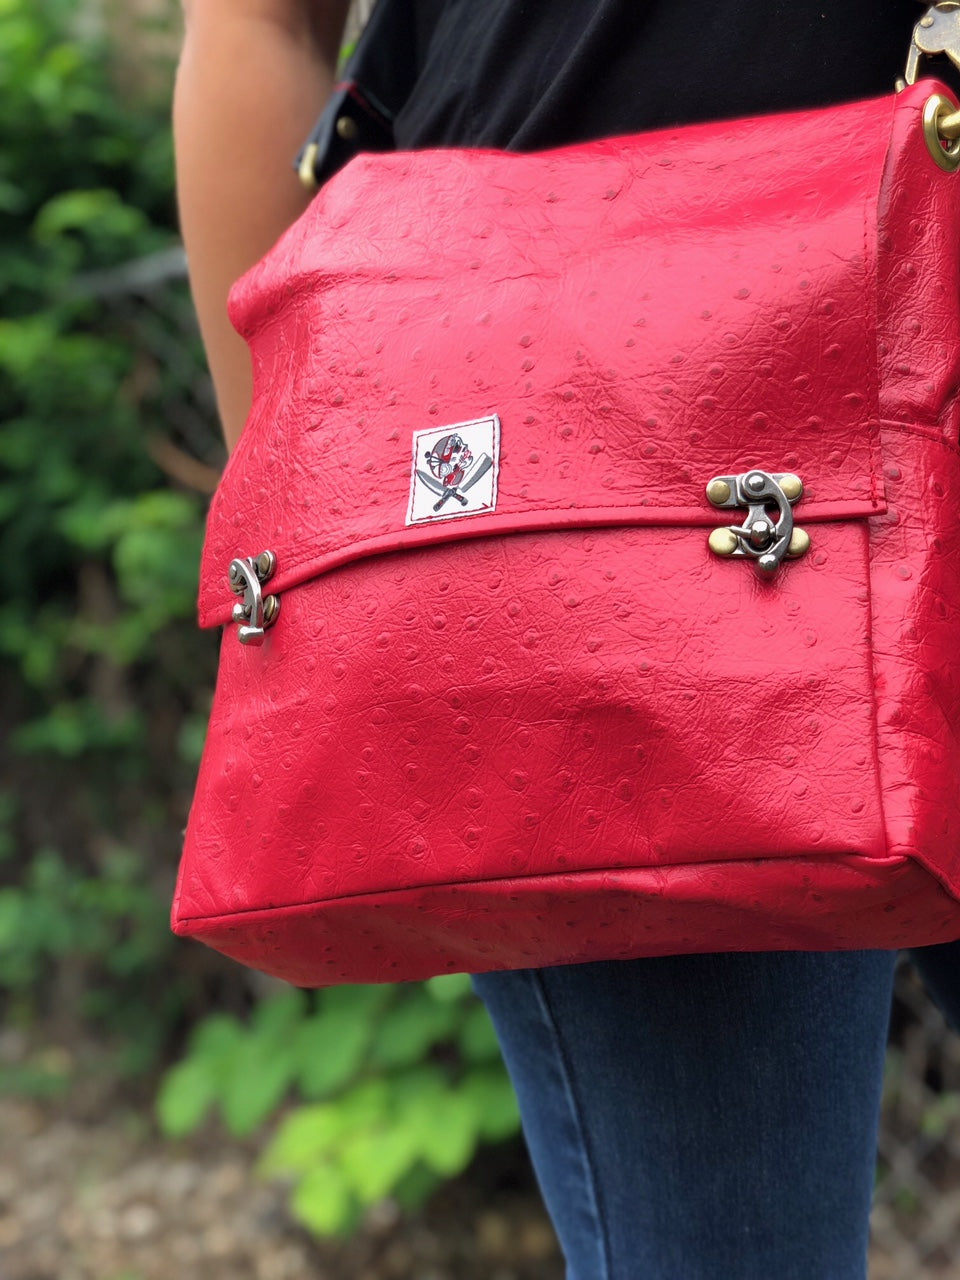 Have you seen our new small leather tote bag??